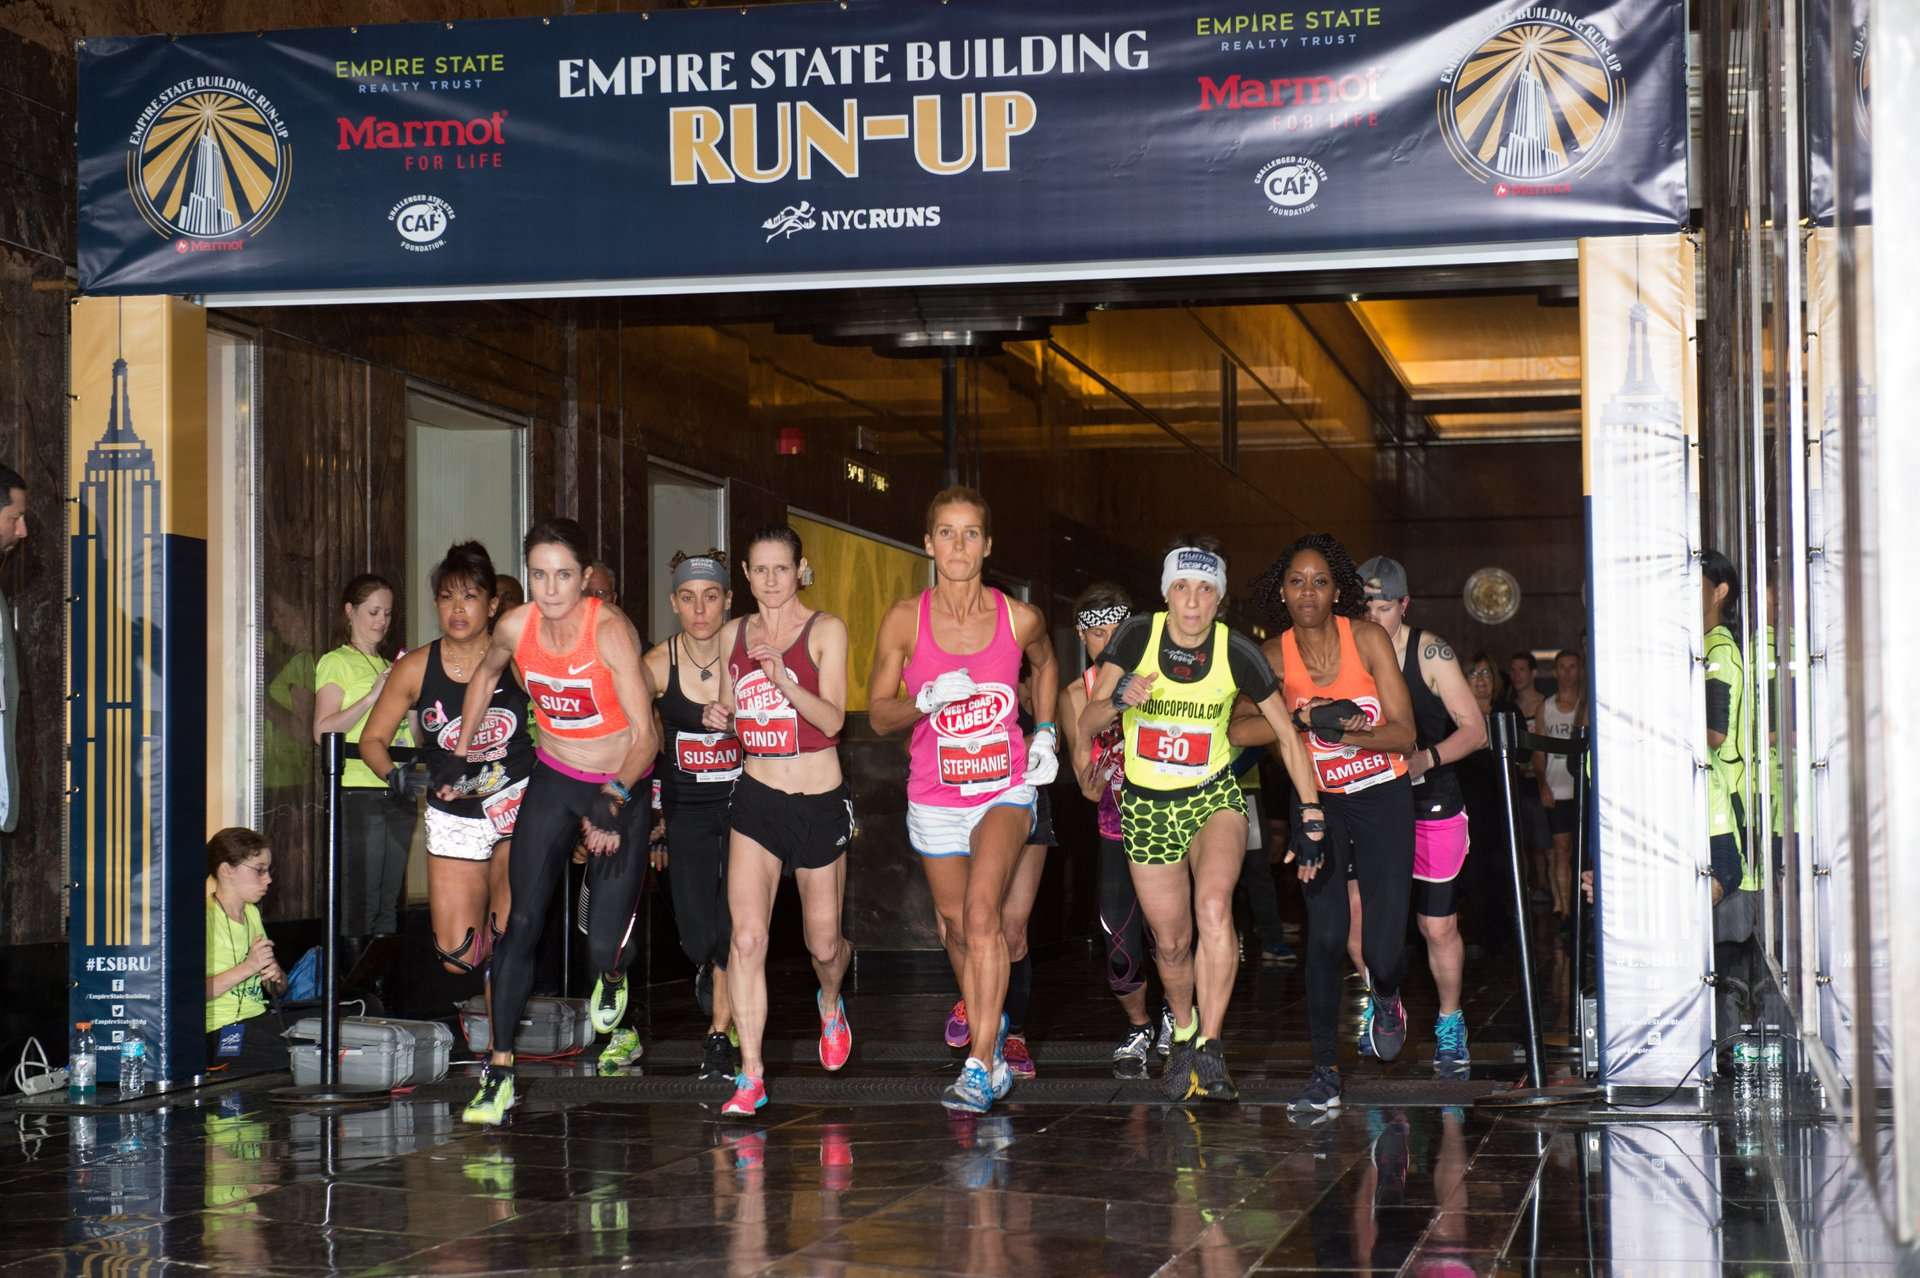 Empire State Building Run-Up in New York 2020 - Best Time